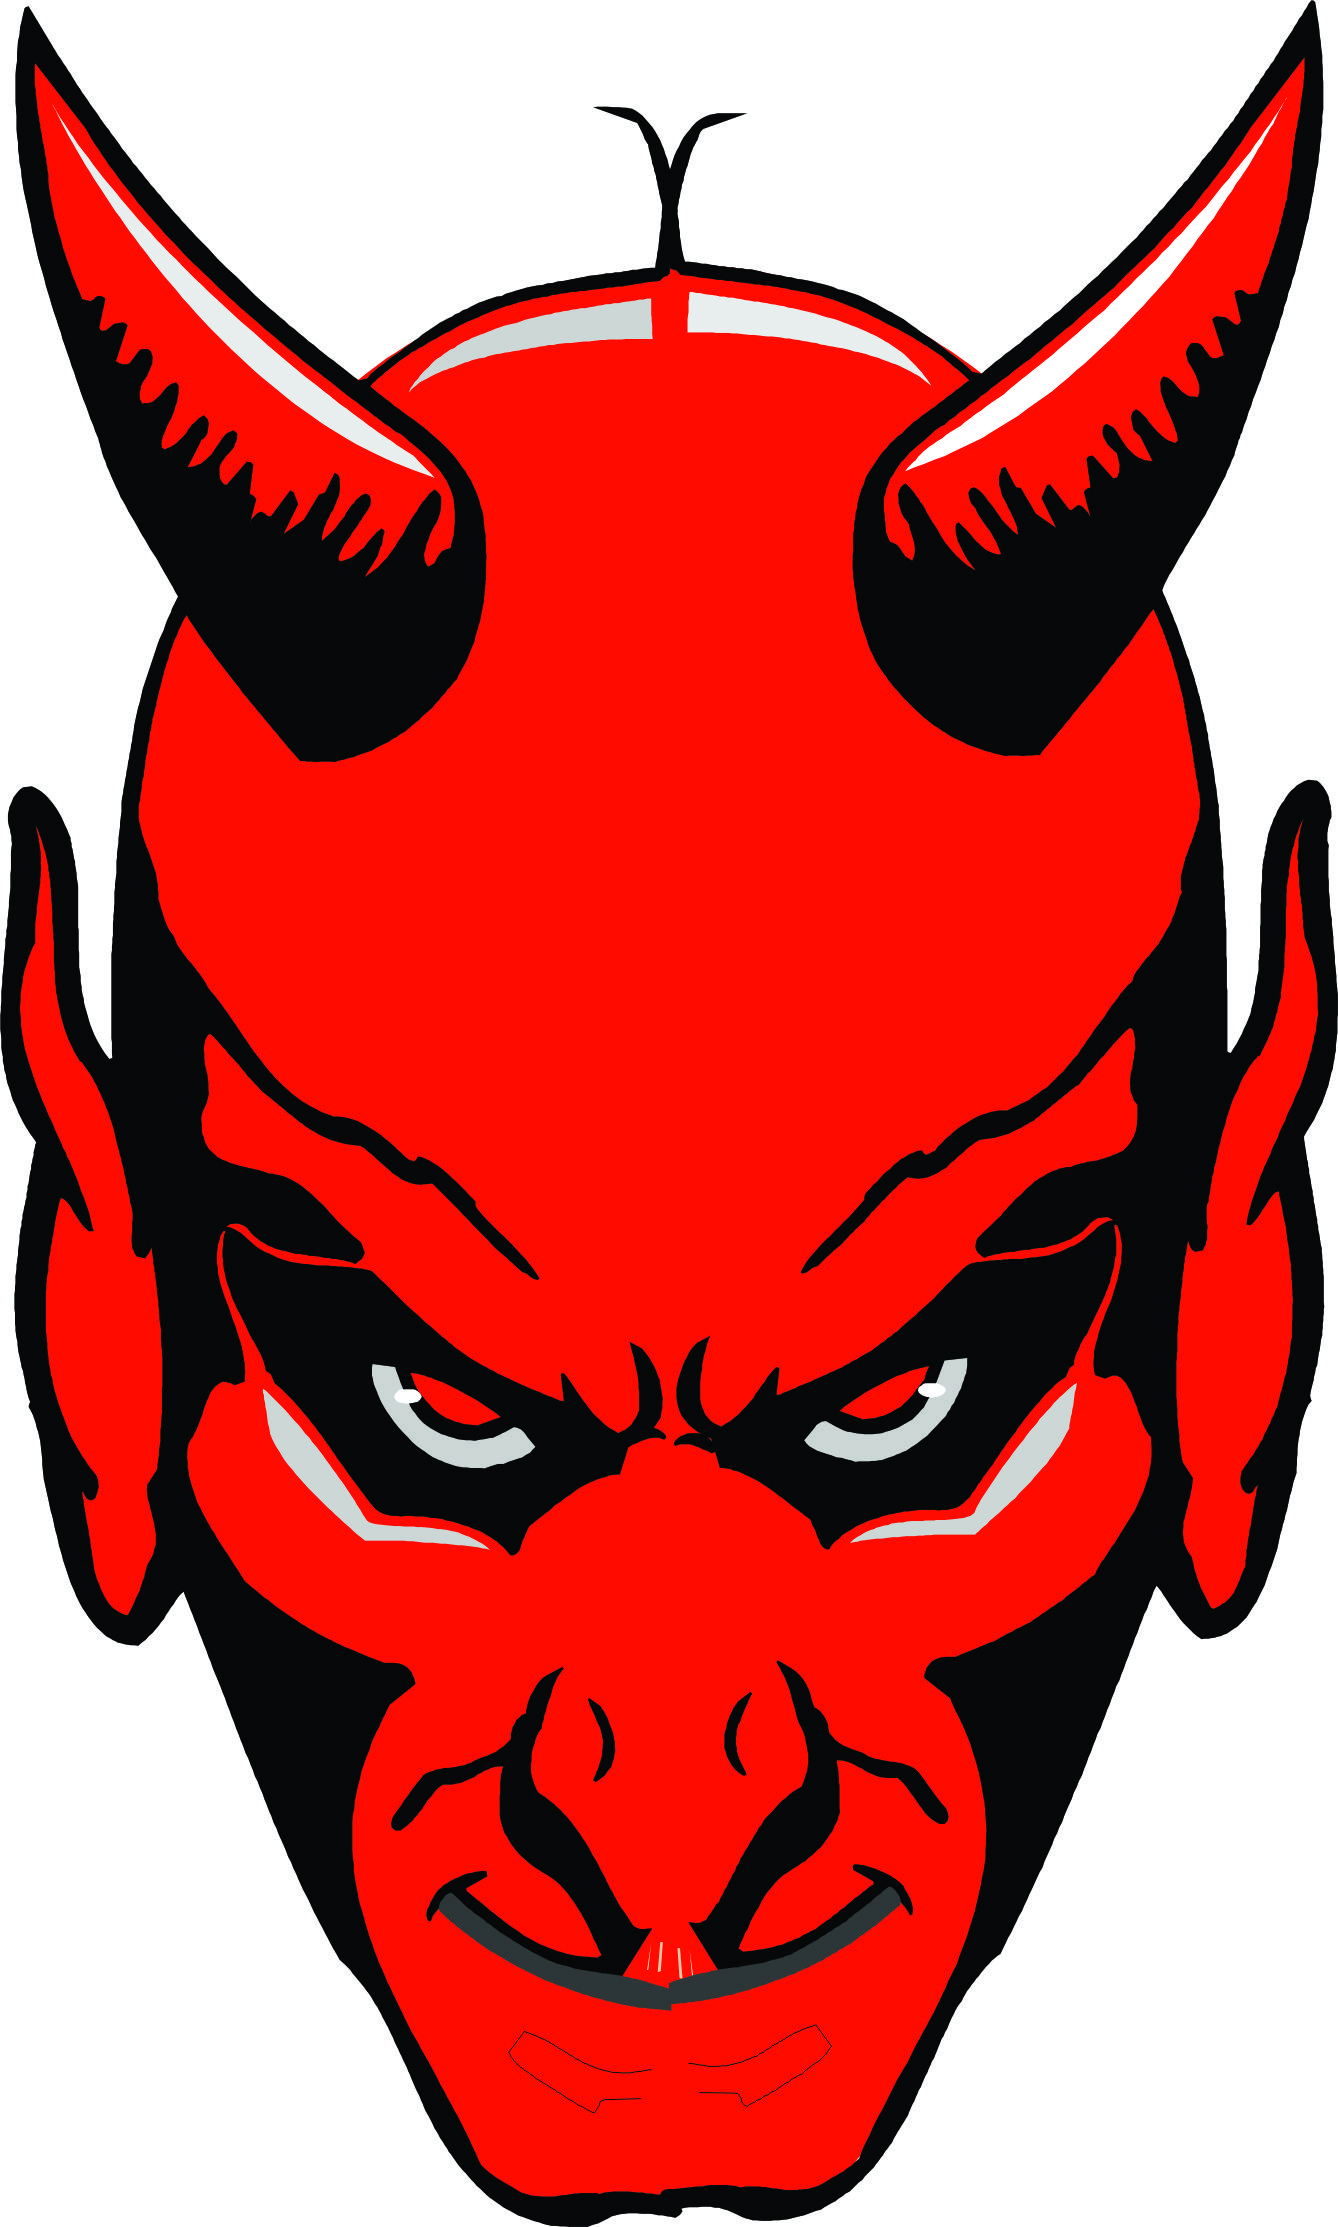 Cartoon Devil Head Pic 4 Www Search Best Cartoon Com 1138 Kb 1338 X